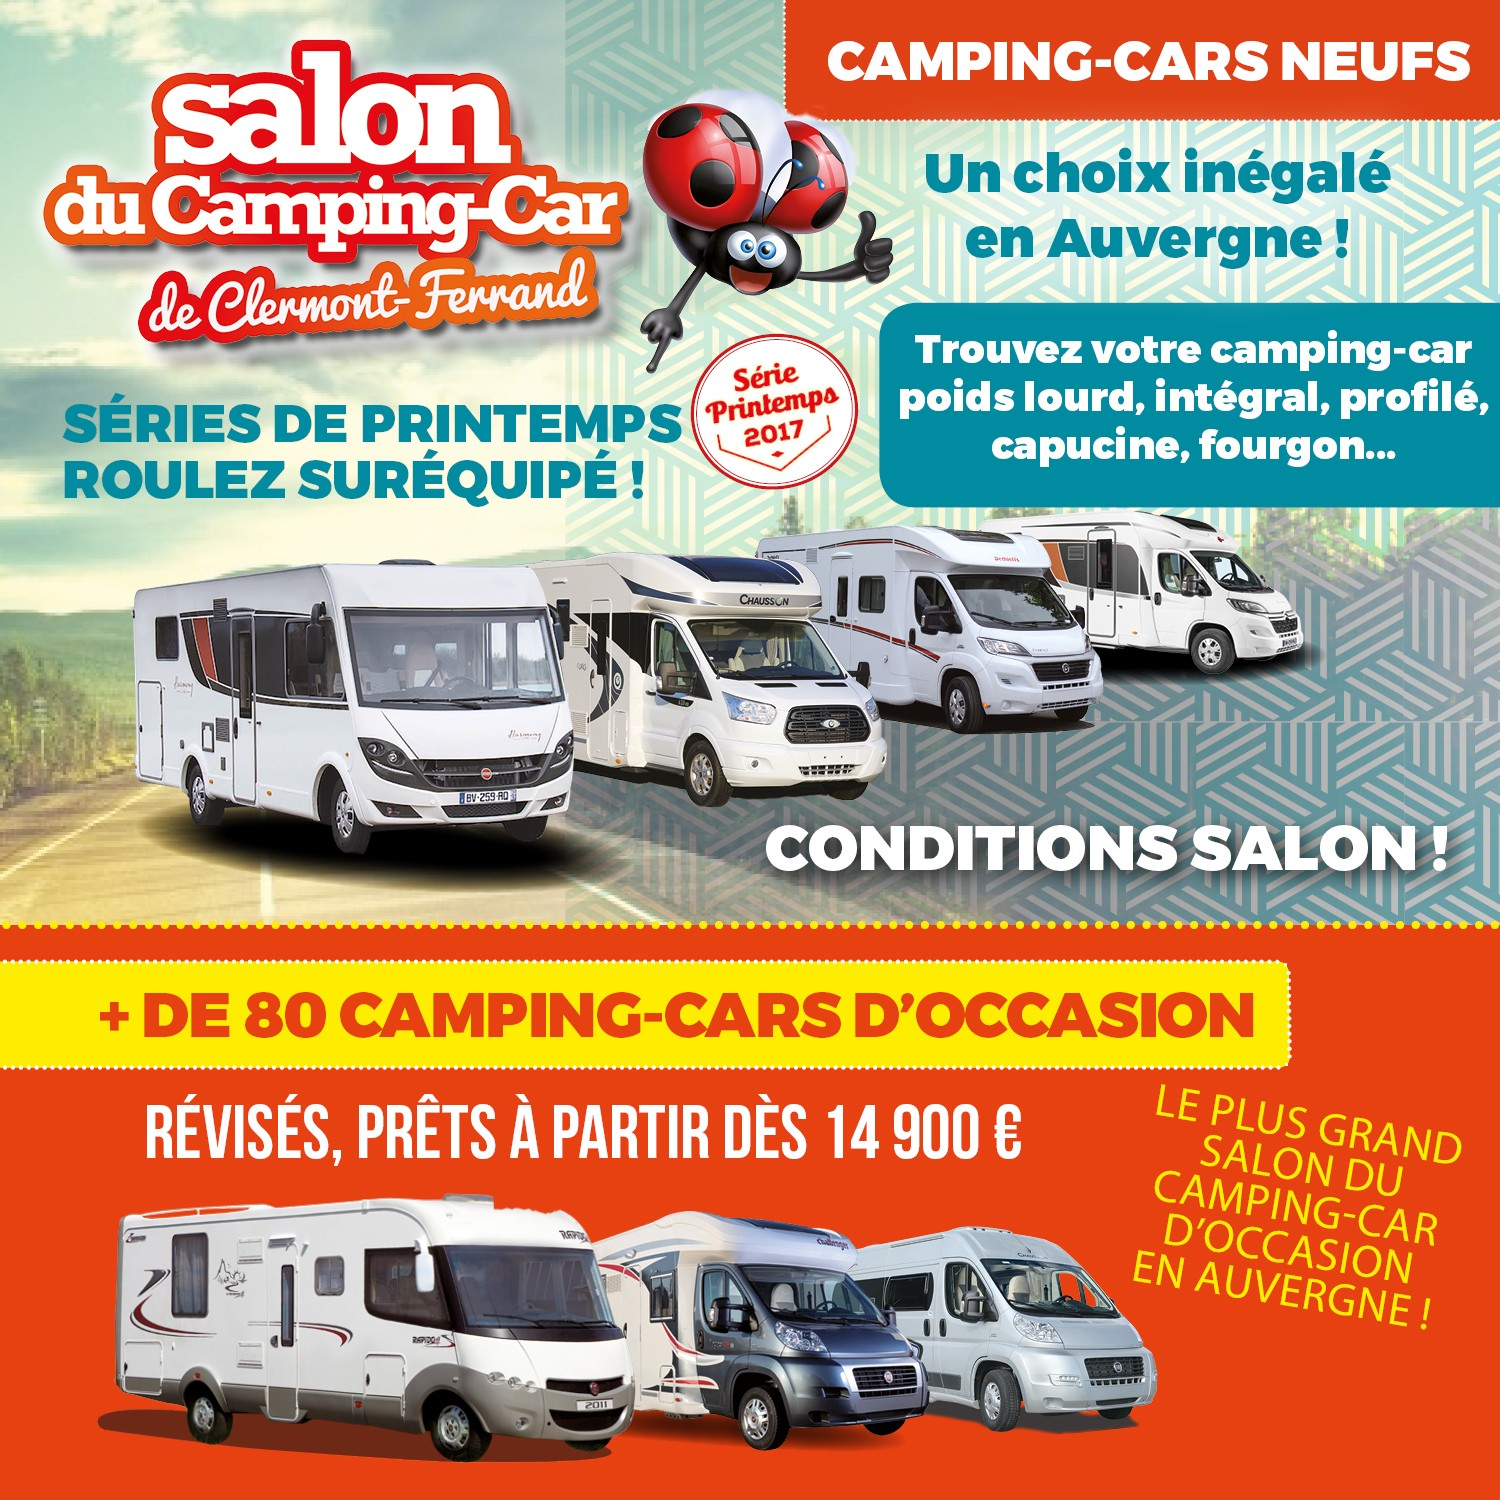 Salon camping car occasion 2017